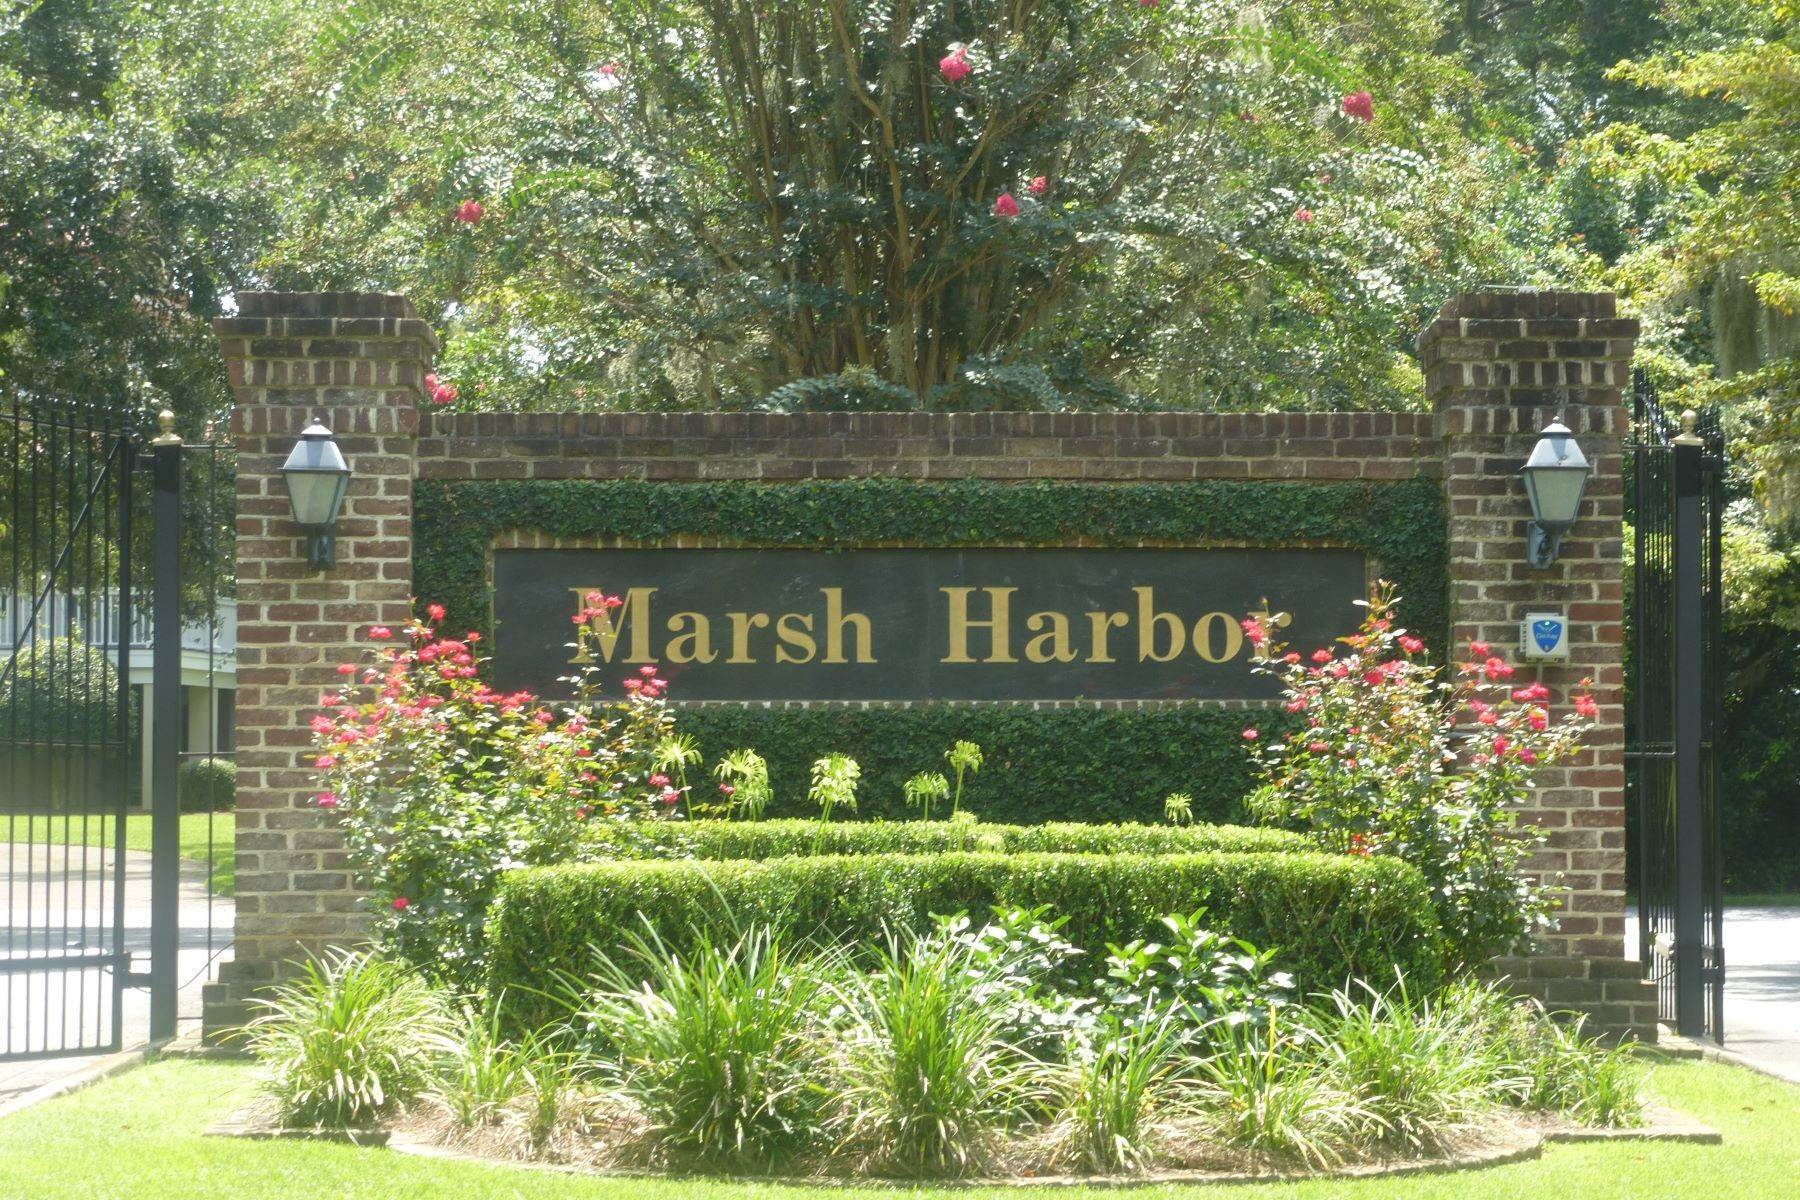 Land for Sale at Superior Lot with Eastern Marsh Views in Marsh Harbor on Whitemarsh Island 127 Marsh Harbor Drive Savannah, Georgia 31410 United States